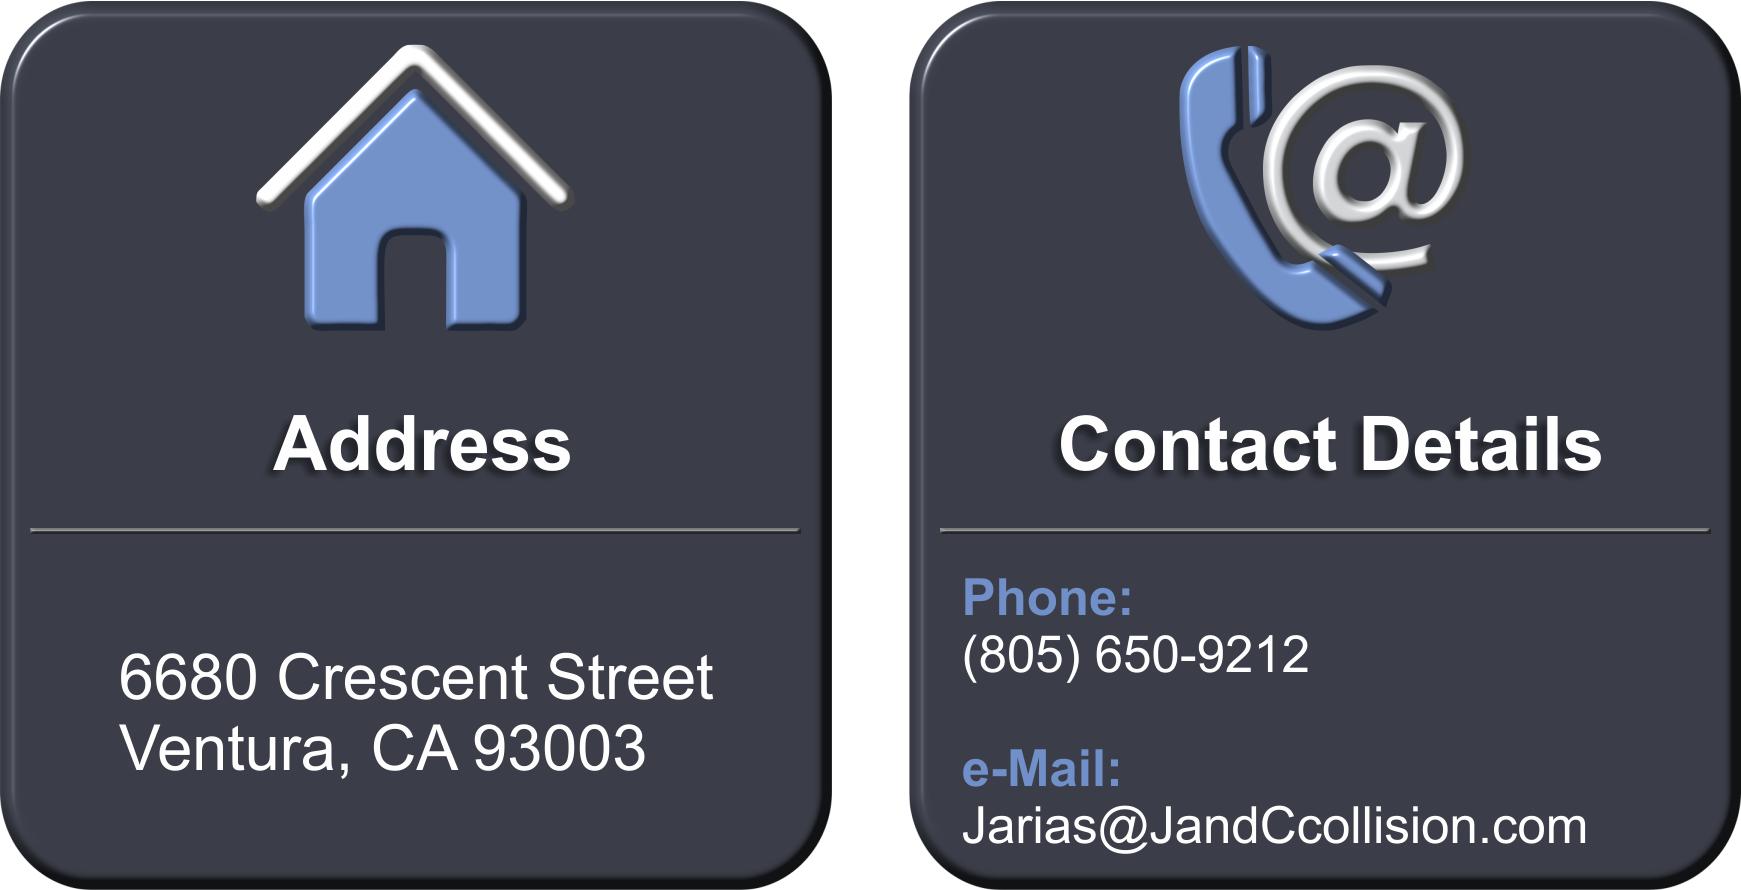 Contact Us, Jarias@JandCcollision.com, 805-650-9212